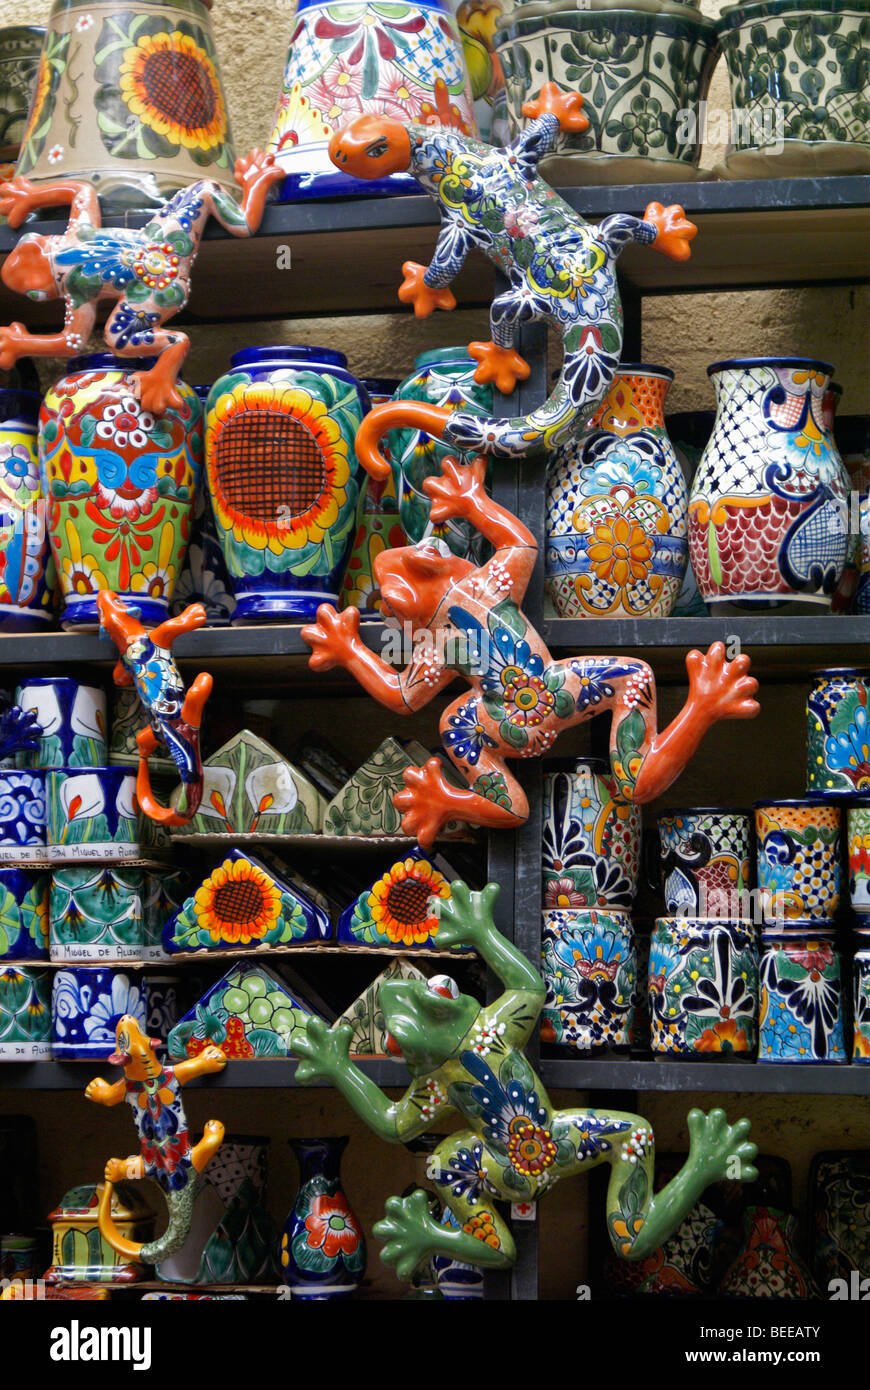 Colorful ceramics for sale in the market in San Miguel de Allende, Mexico - Stock Image